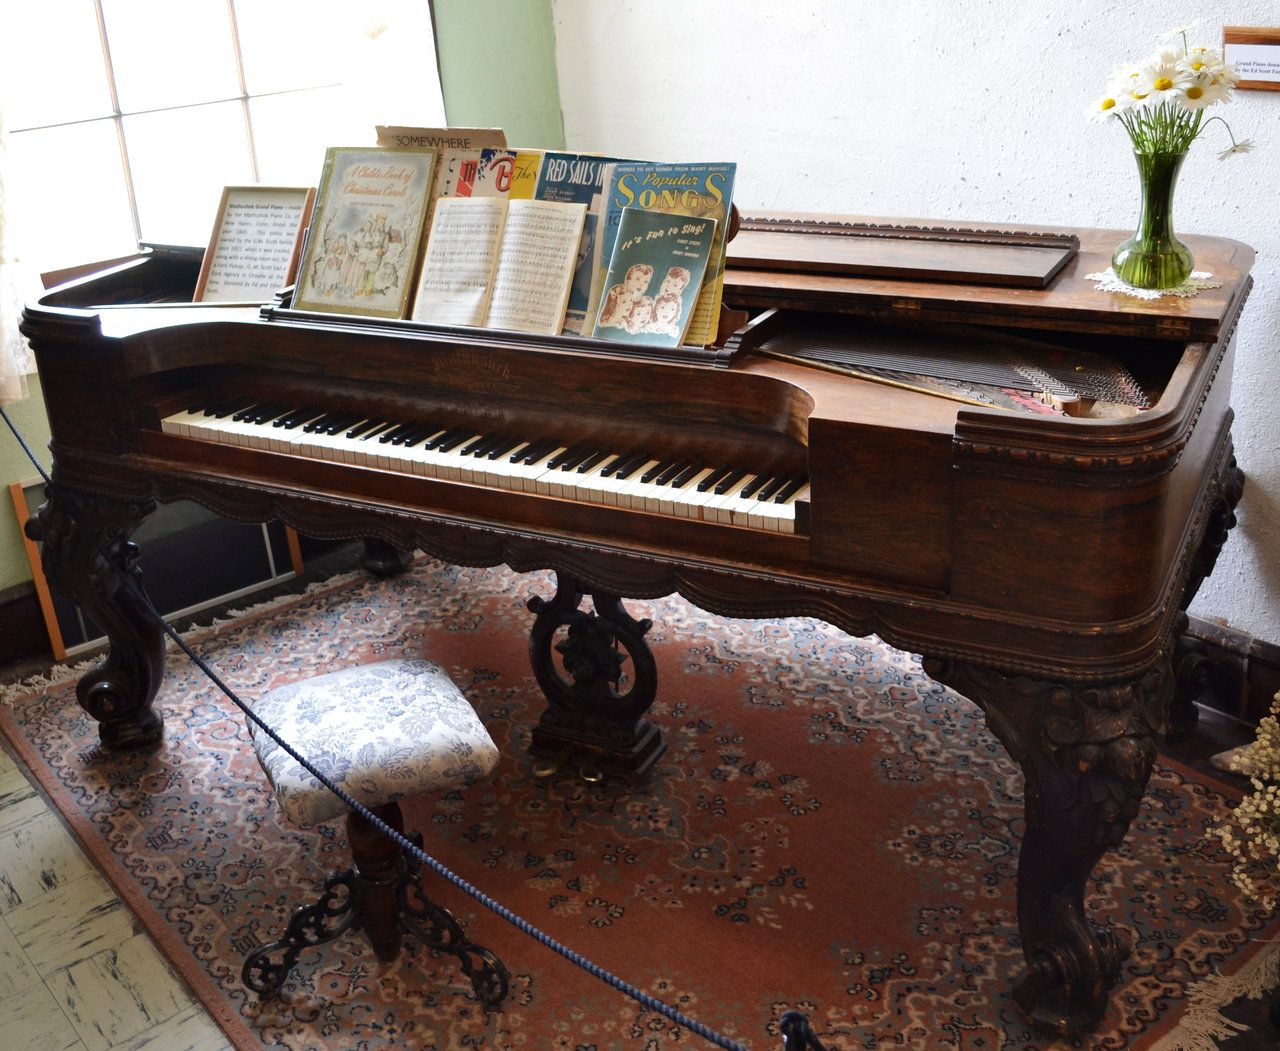 At one time I had thought of an antique square piano but I